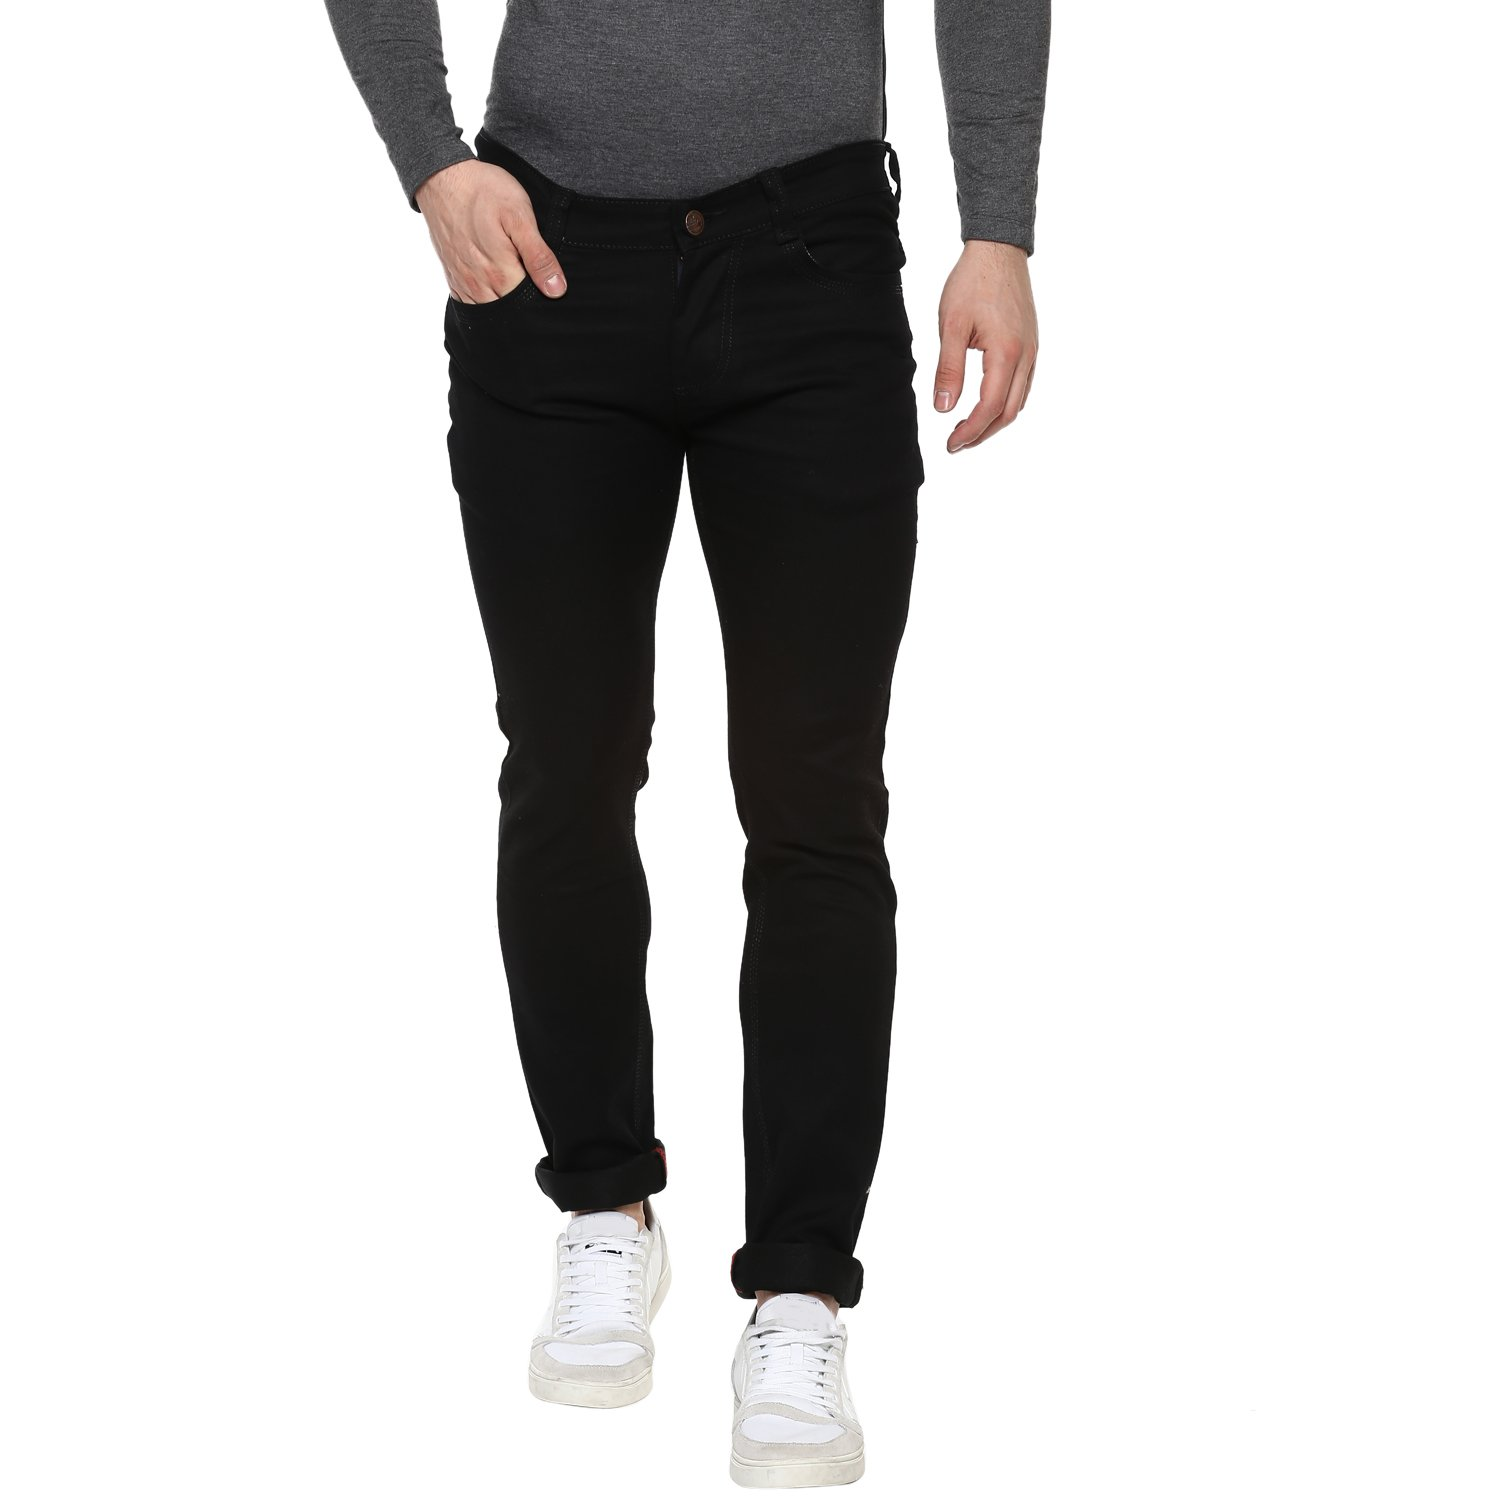 56cd1720733 Urbano Fashion Men's Black Slim Fit Stretch Jeans  Amazon.in  Clothing    Accessories